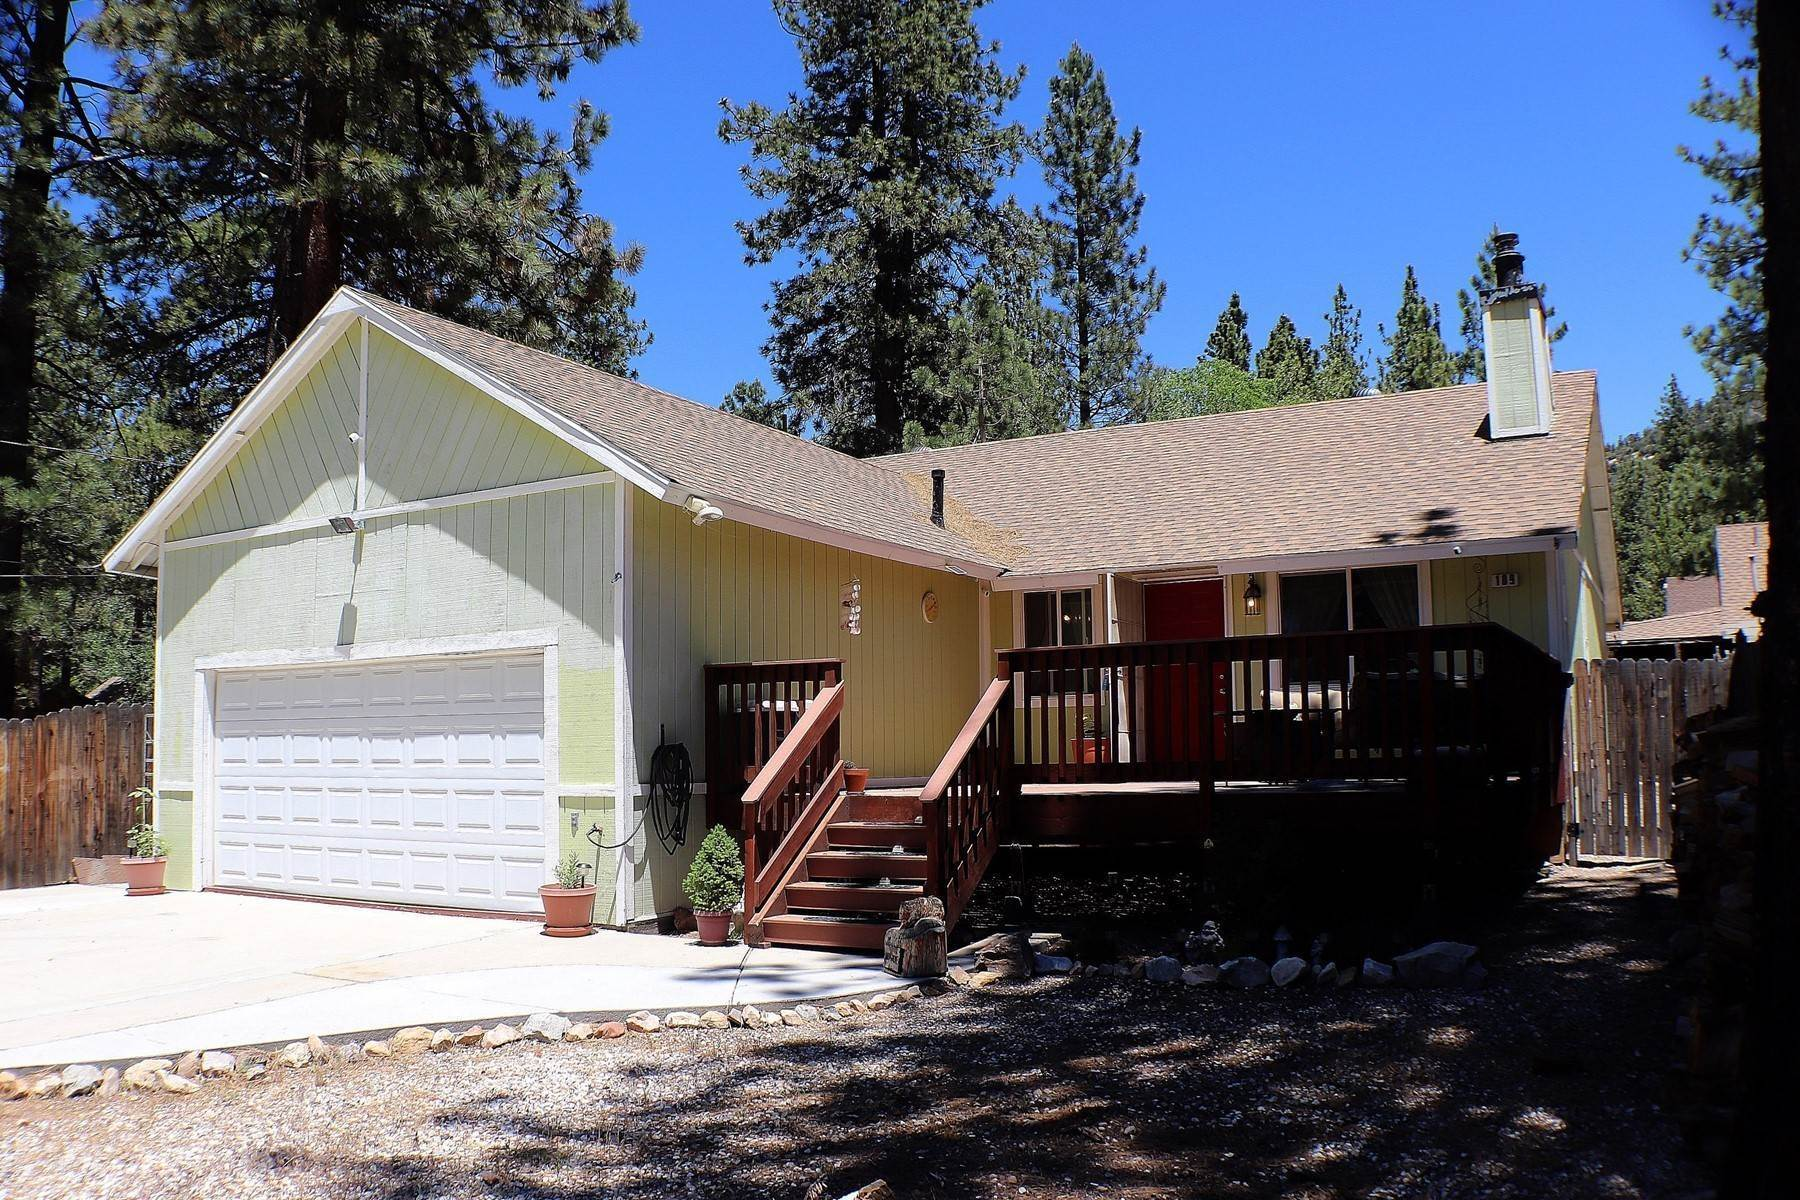 Single Family Homes for Sale at 109 East North Shore Drive, Big Bear City, California 92314 109 East North Shore Drive Big Bear City, California 92314 United States